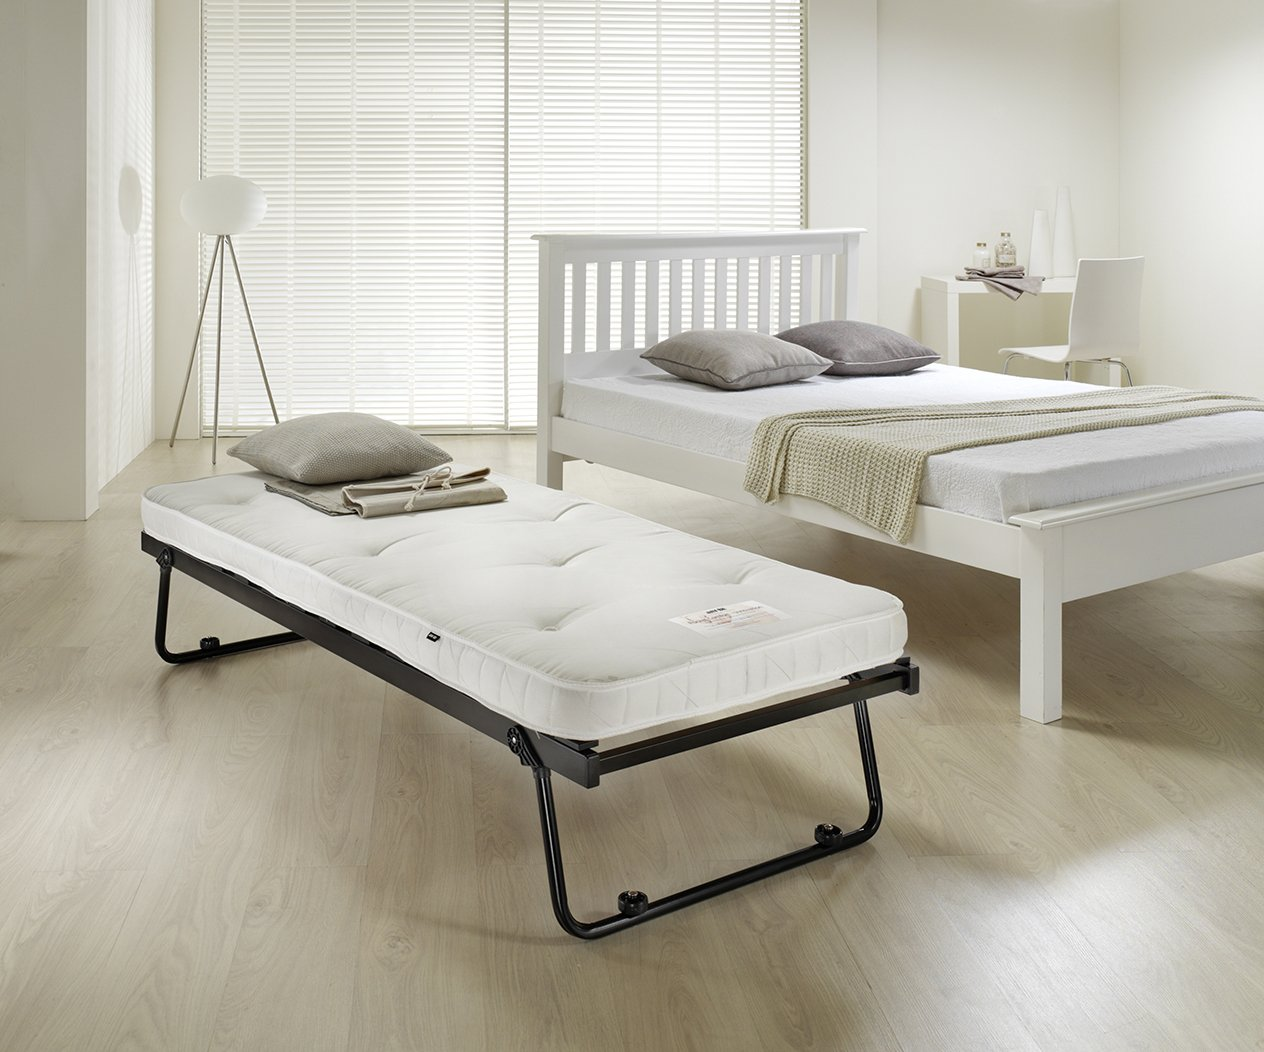 Hideaway Guest Bed Jay Be Tuckaway Single Rollaway Bed With Pocket Sprung Mattress